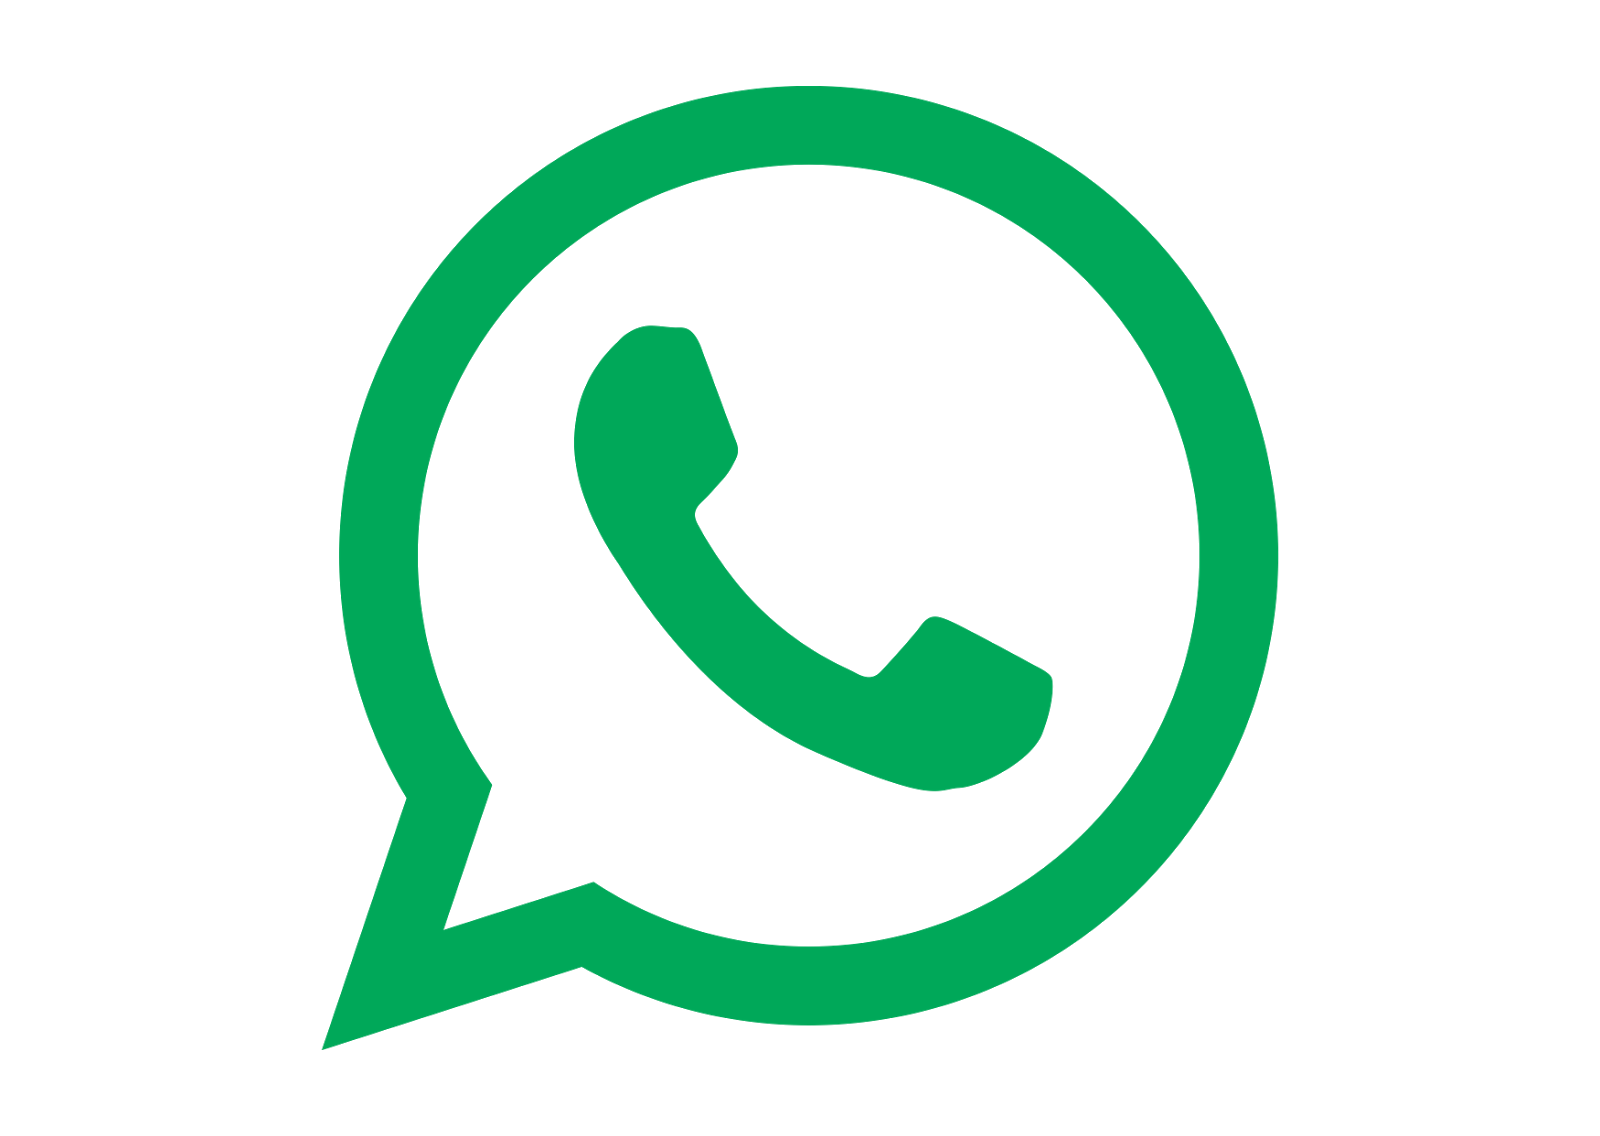 Whatsapp Logo Background PNG Transparent Background, Free Download #46067 -  FreeIconsPNG